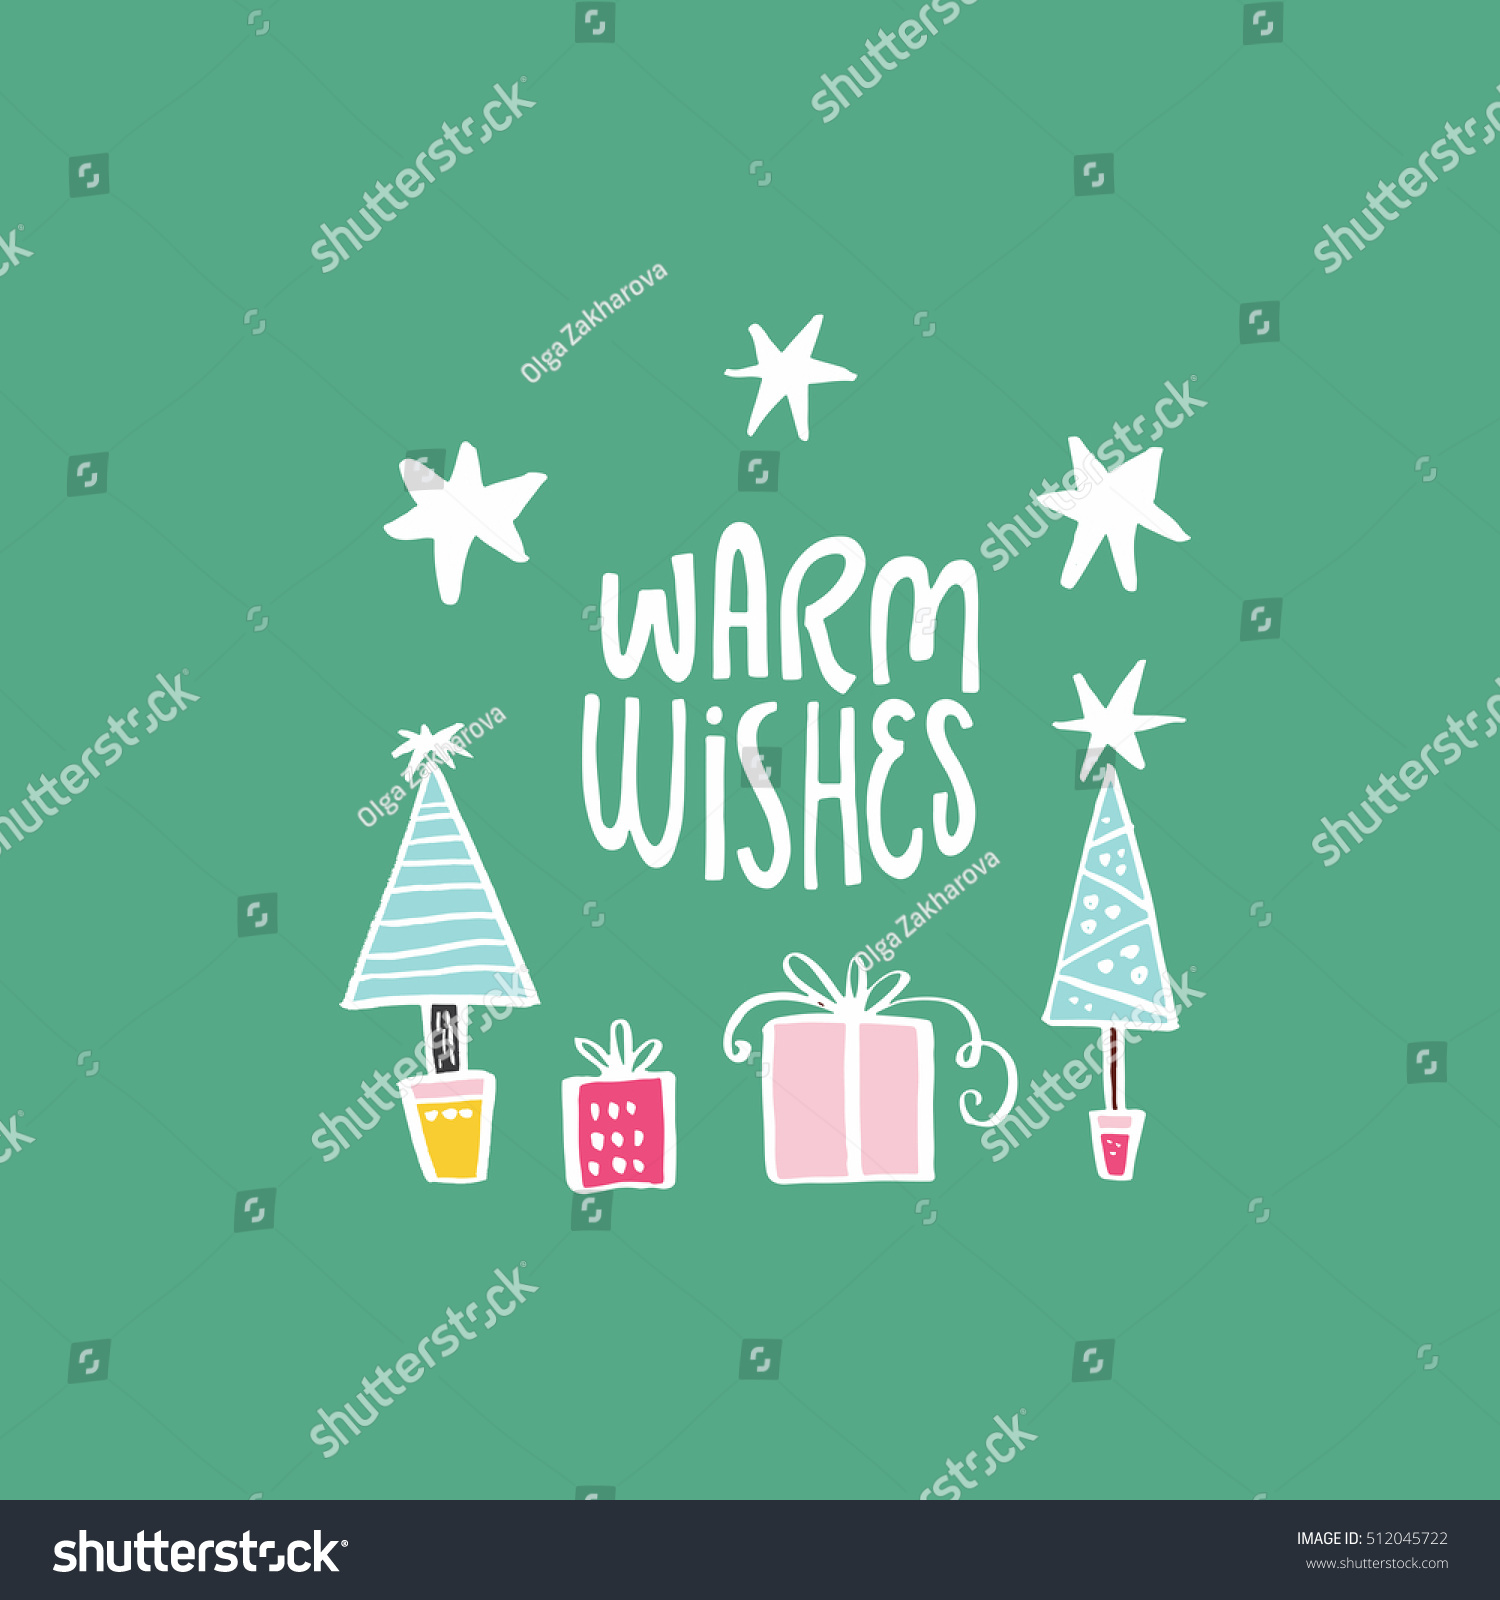 Simple christmas card design handdrawn illustration stock vector hd simple christmas card design with handdrawn illustration and lettering vector holiday series m4hsunfo